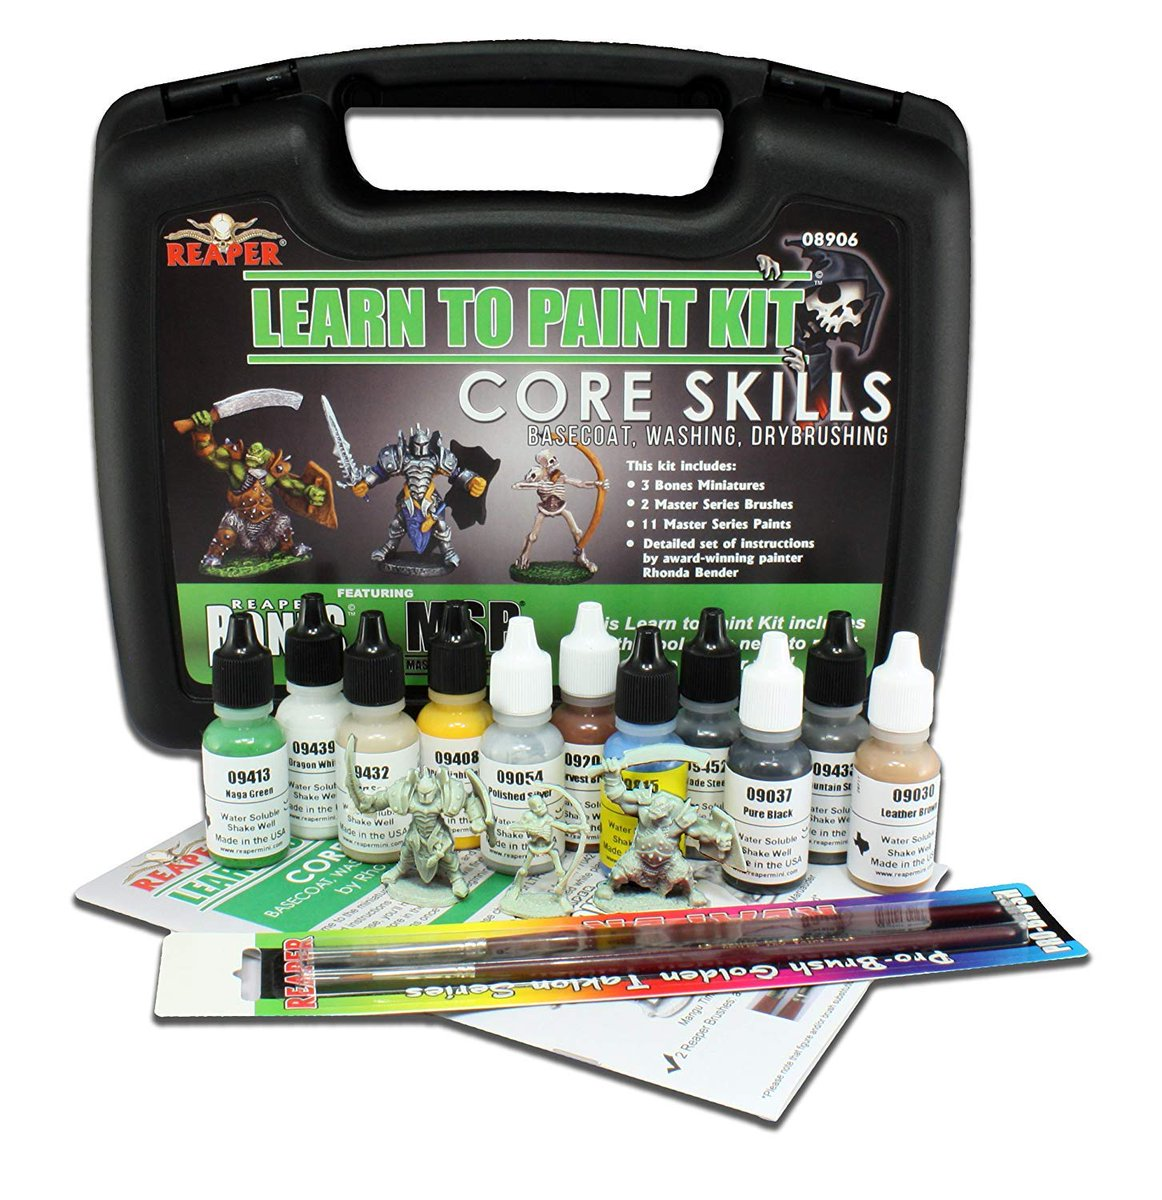 Giveaway Time!! Follow and RT for a chance to win a Reaper Miniatures Learn To Paint Kit! I will randomly choose a winner on June 6! #DnD <br>http://pic.twitter.com/BzuAgsz7bF